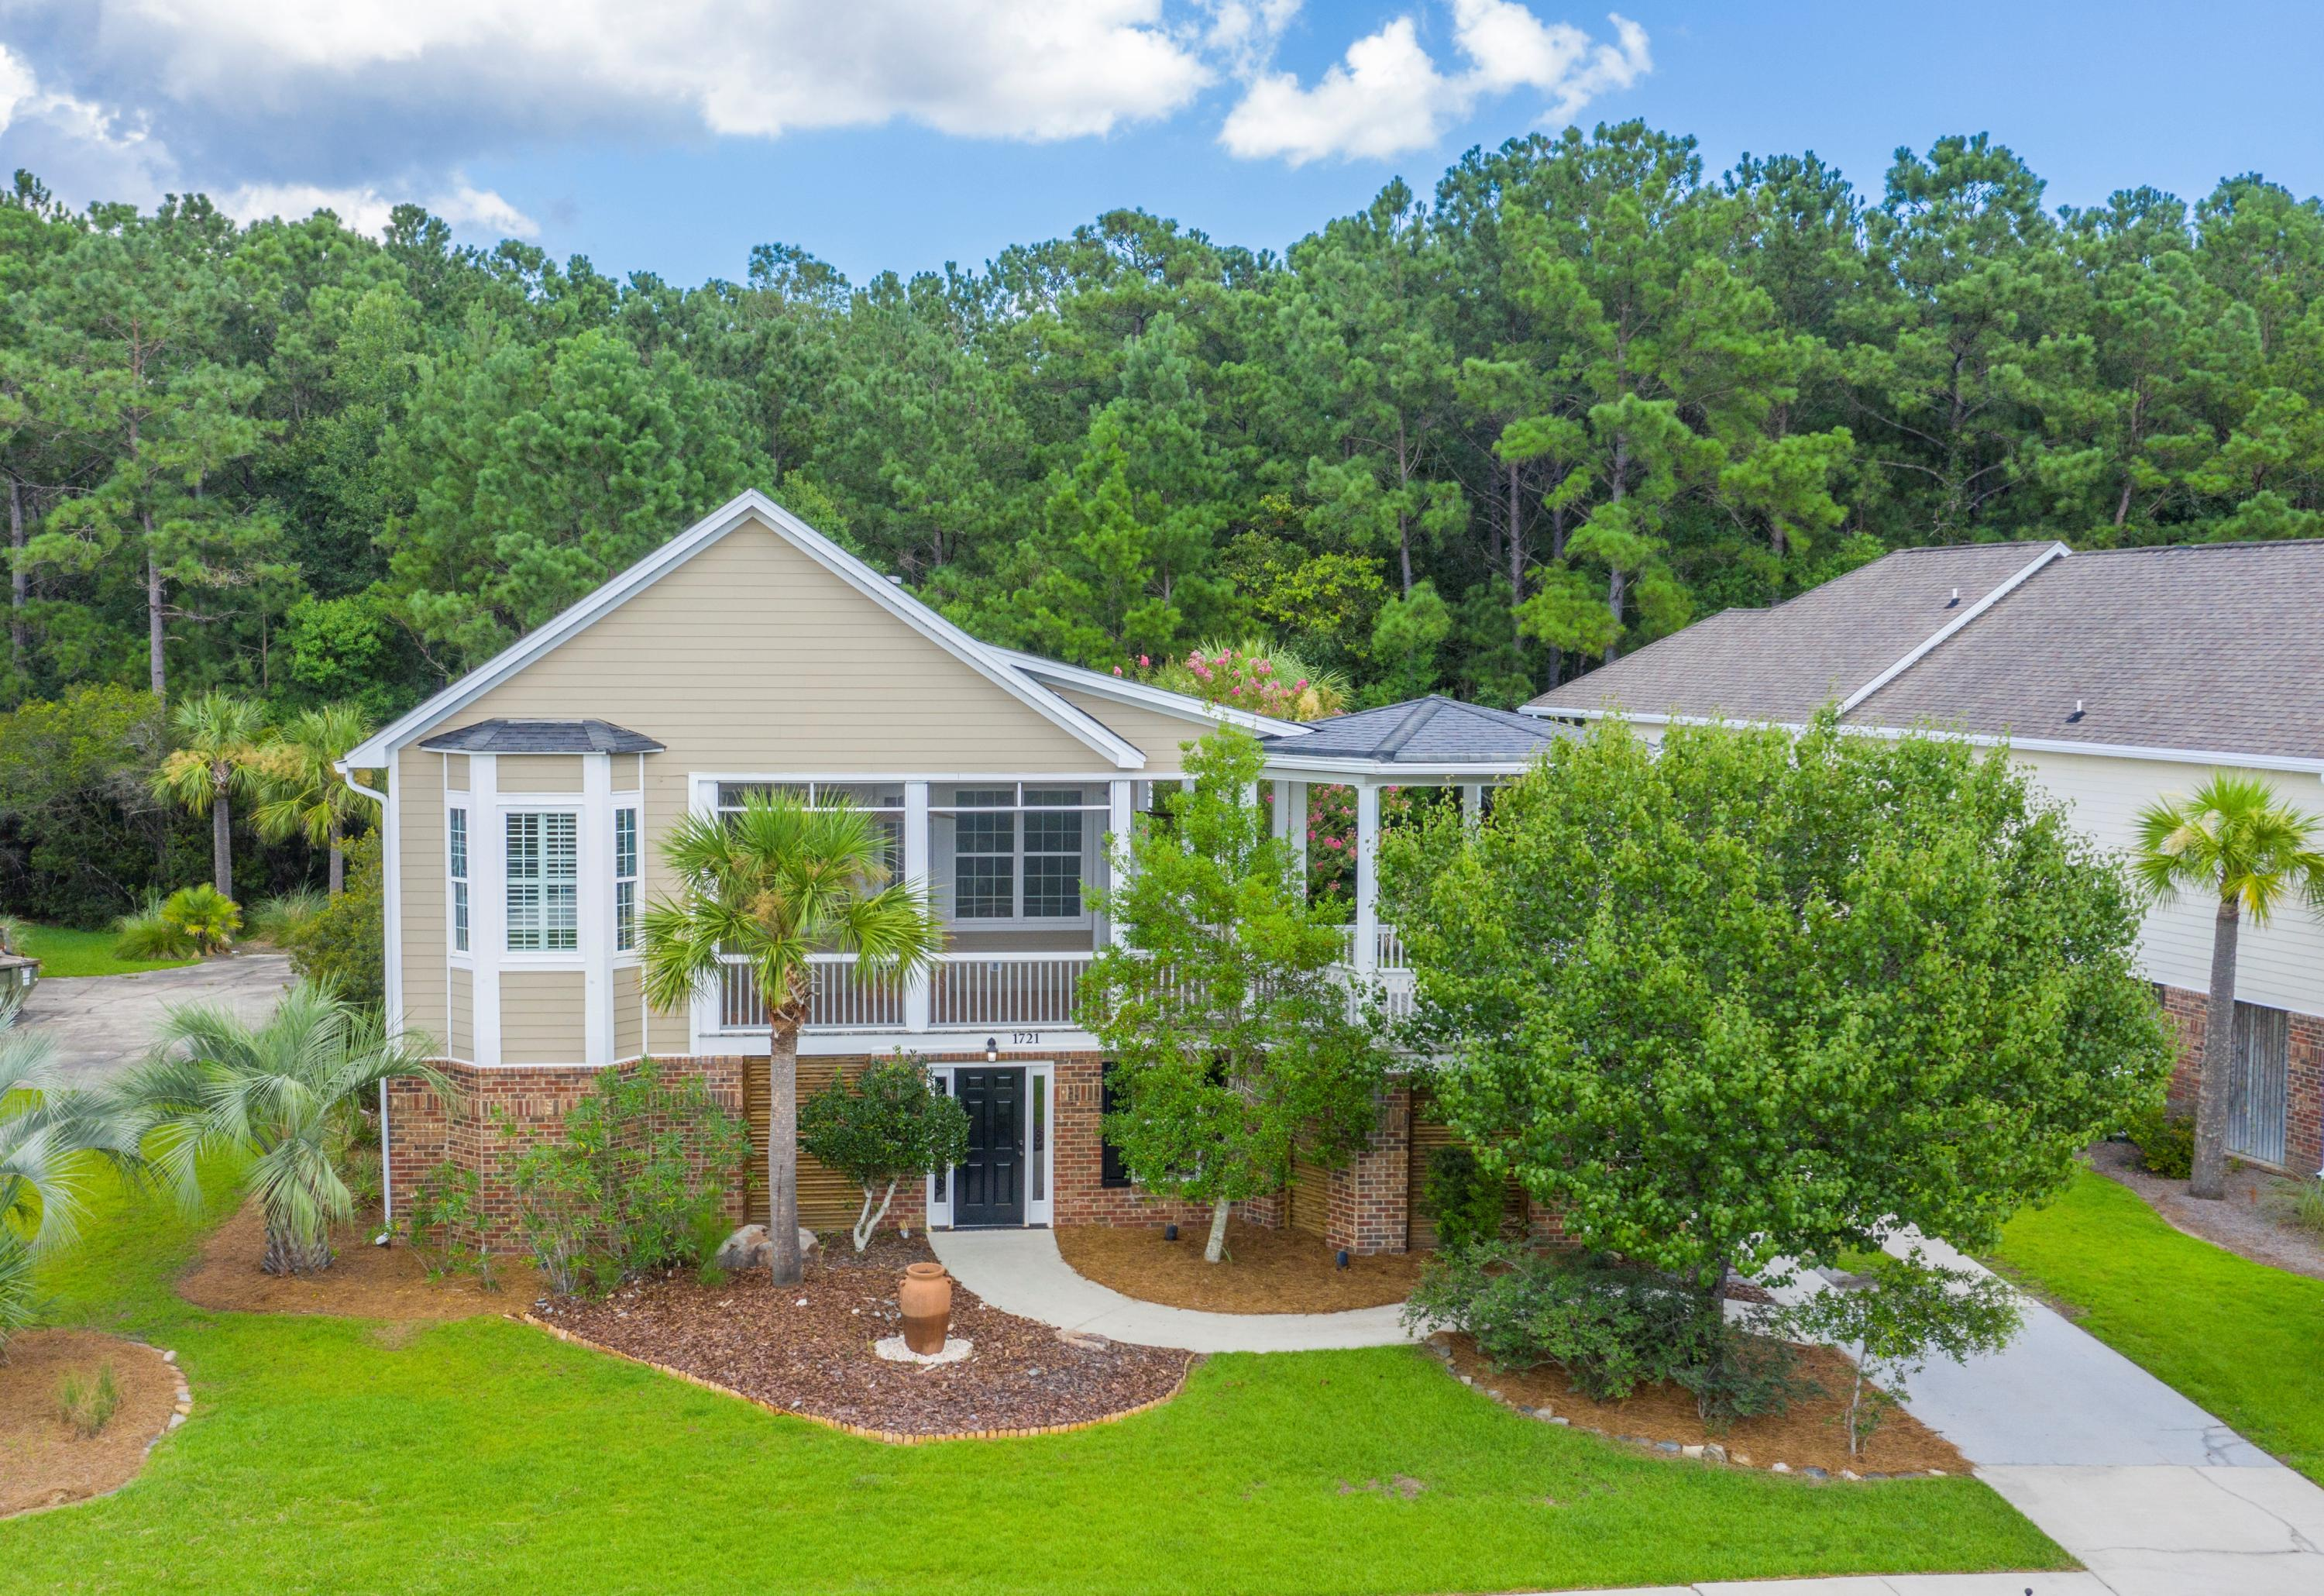 Rivertowne Country Club Homes For Sale - 1721 Rivertowne Country Club, Mount Pleasant, SC - 26